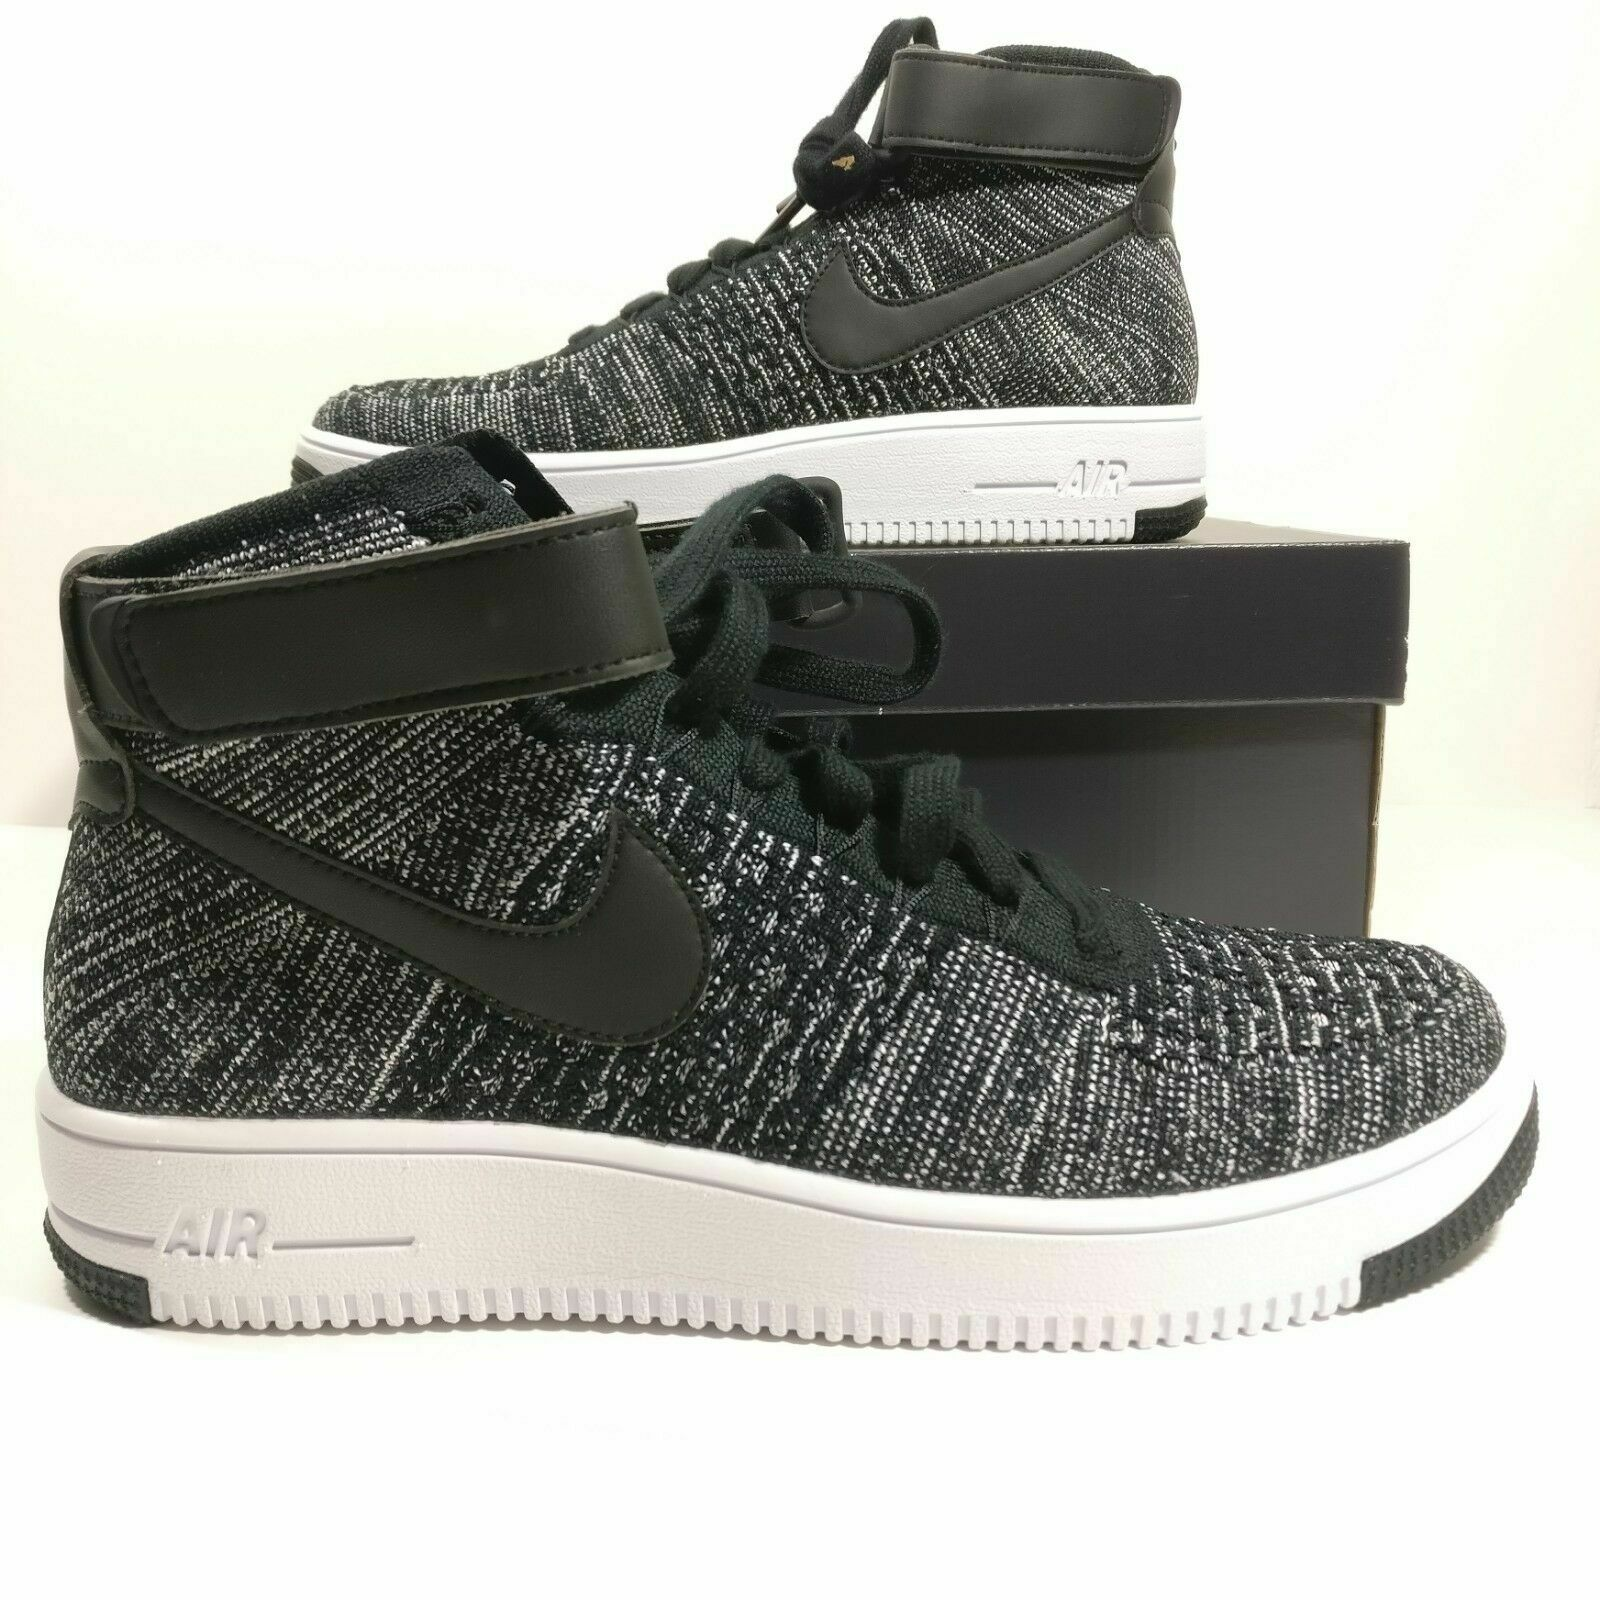 Nike Air Force 1 Ultra Flyknit Mid Oreo Men's shoes's ( 817420-004 ) Size 14